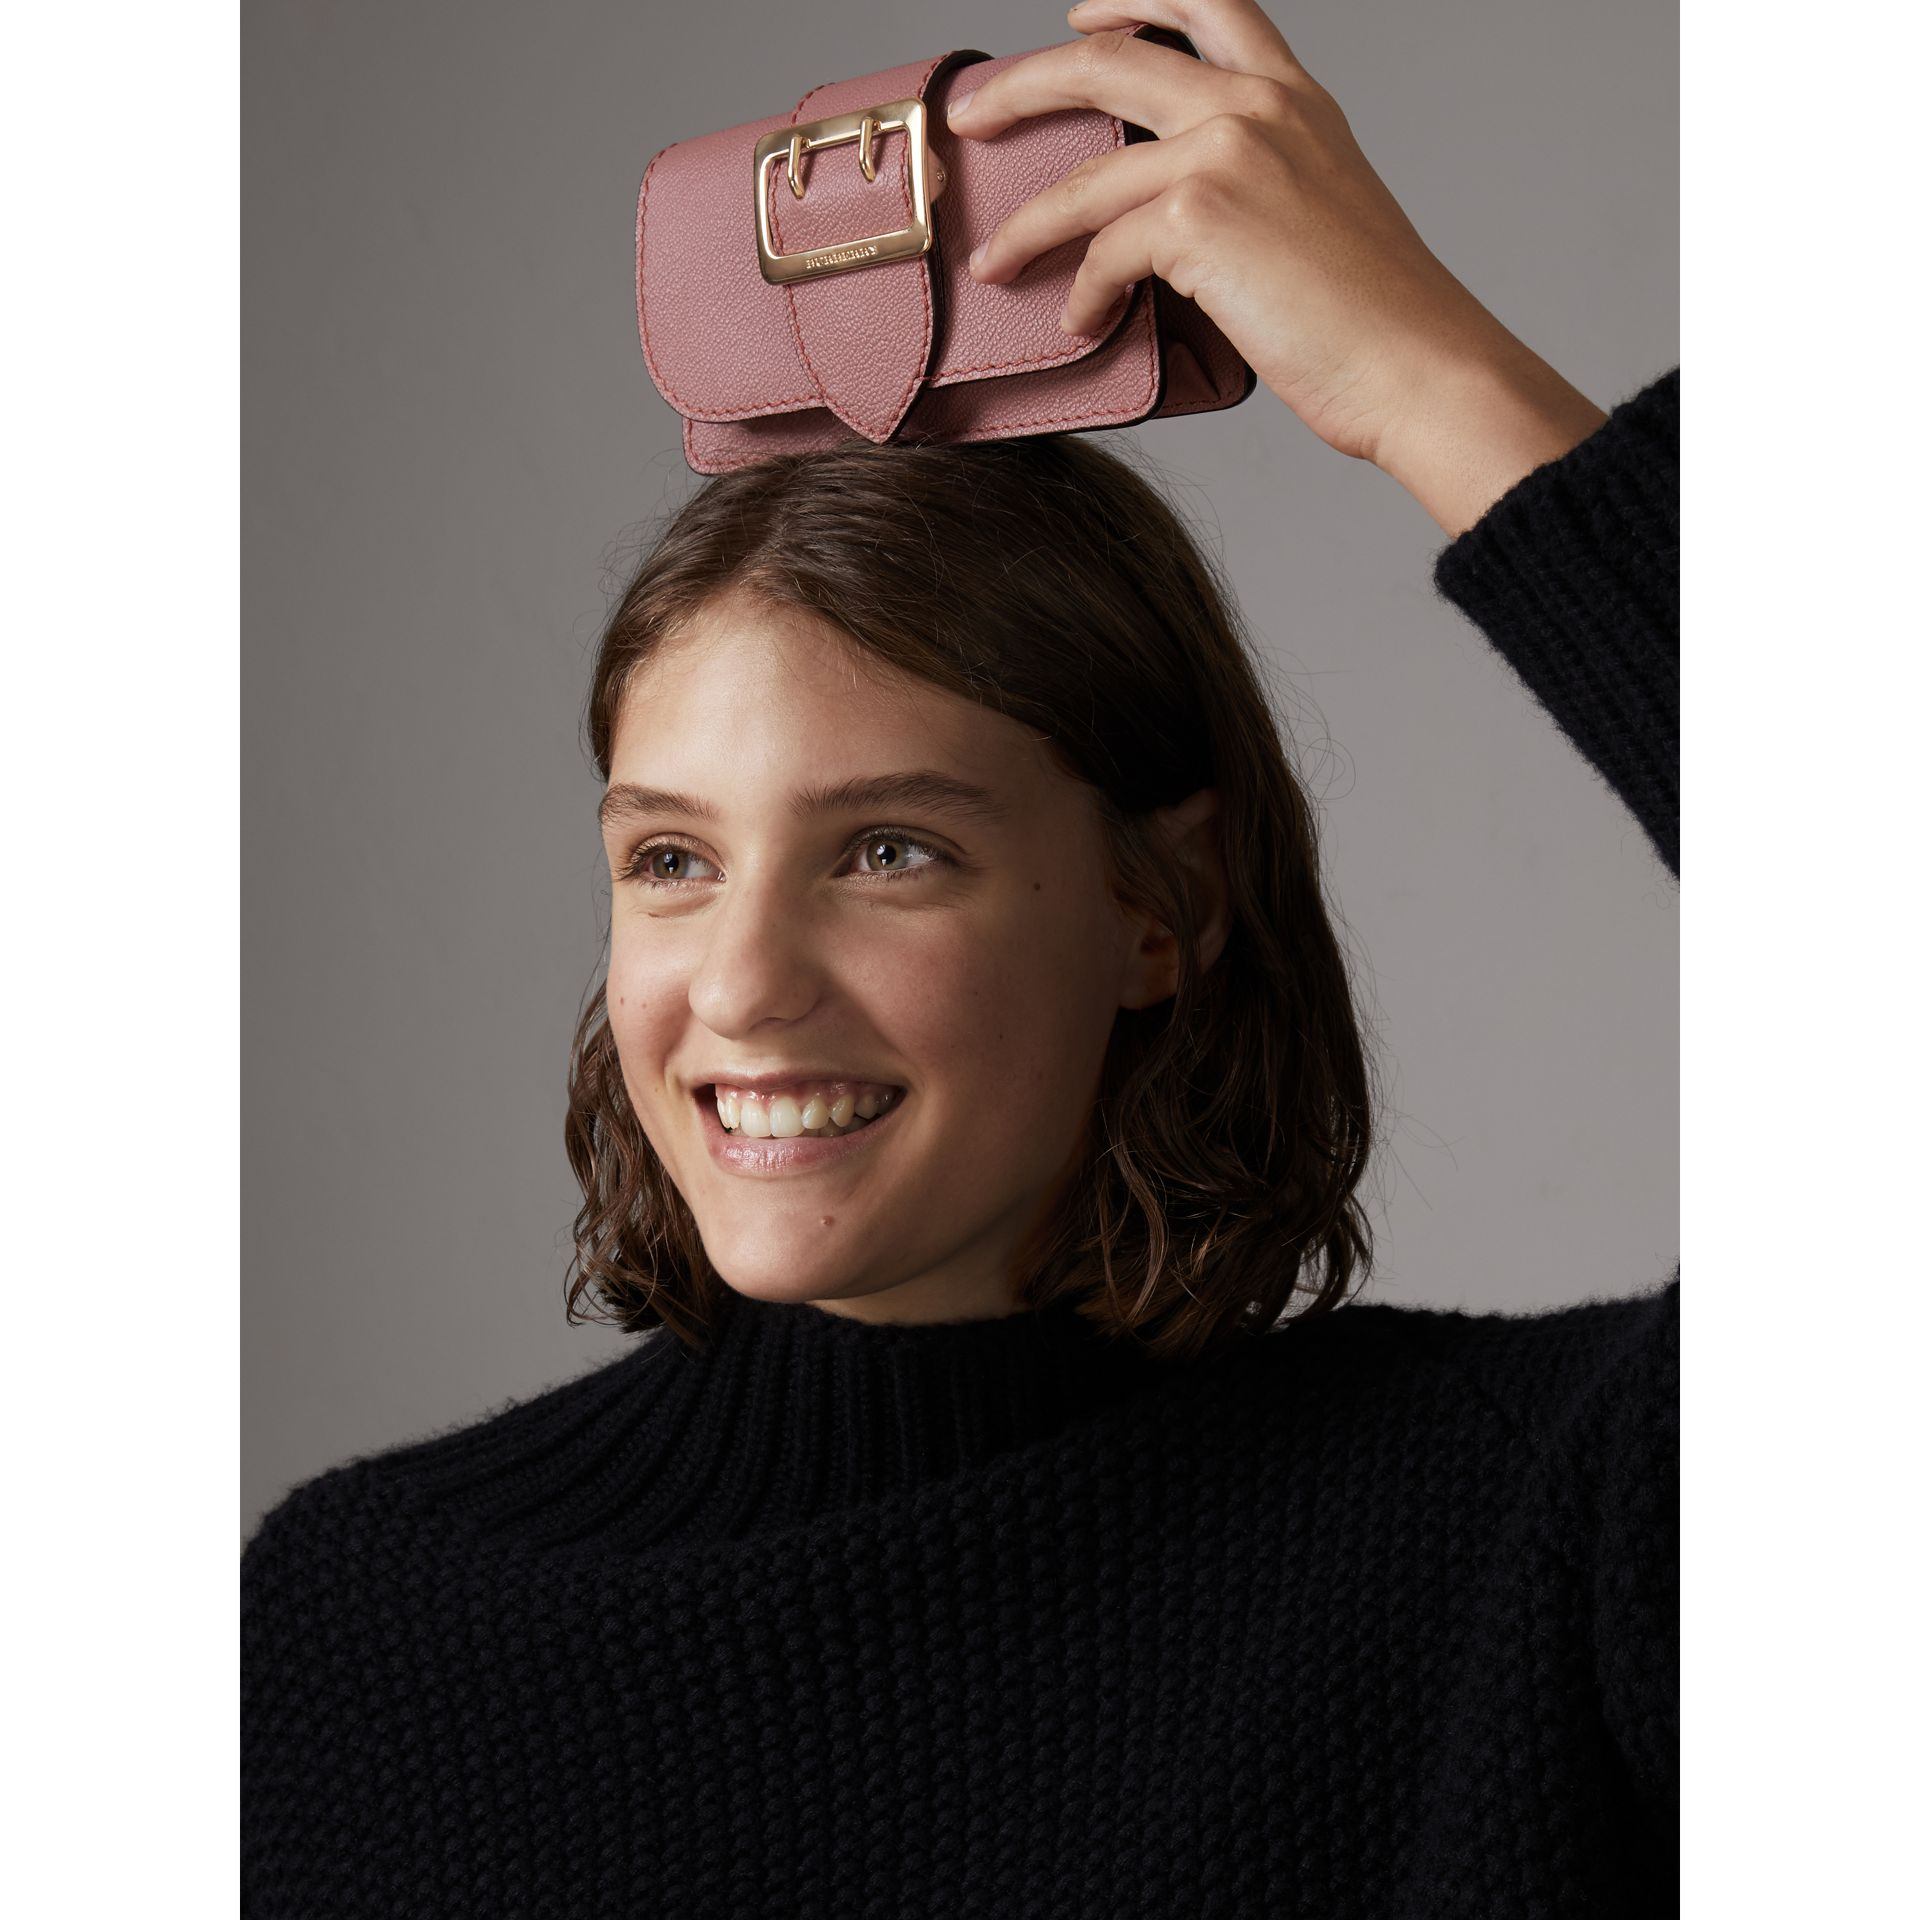 Borsa The Buckle mini in pelle a grana (Rosa Polvere) - Donna | Burberry - immagine della galleria 11